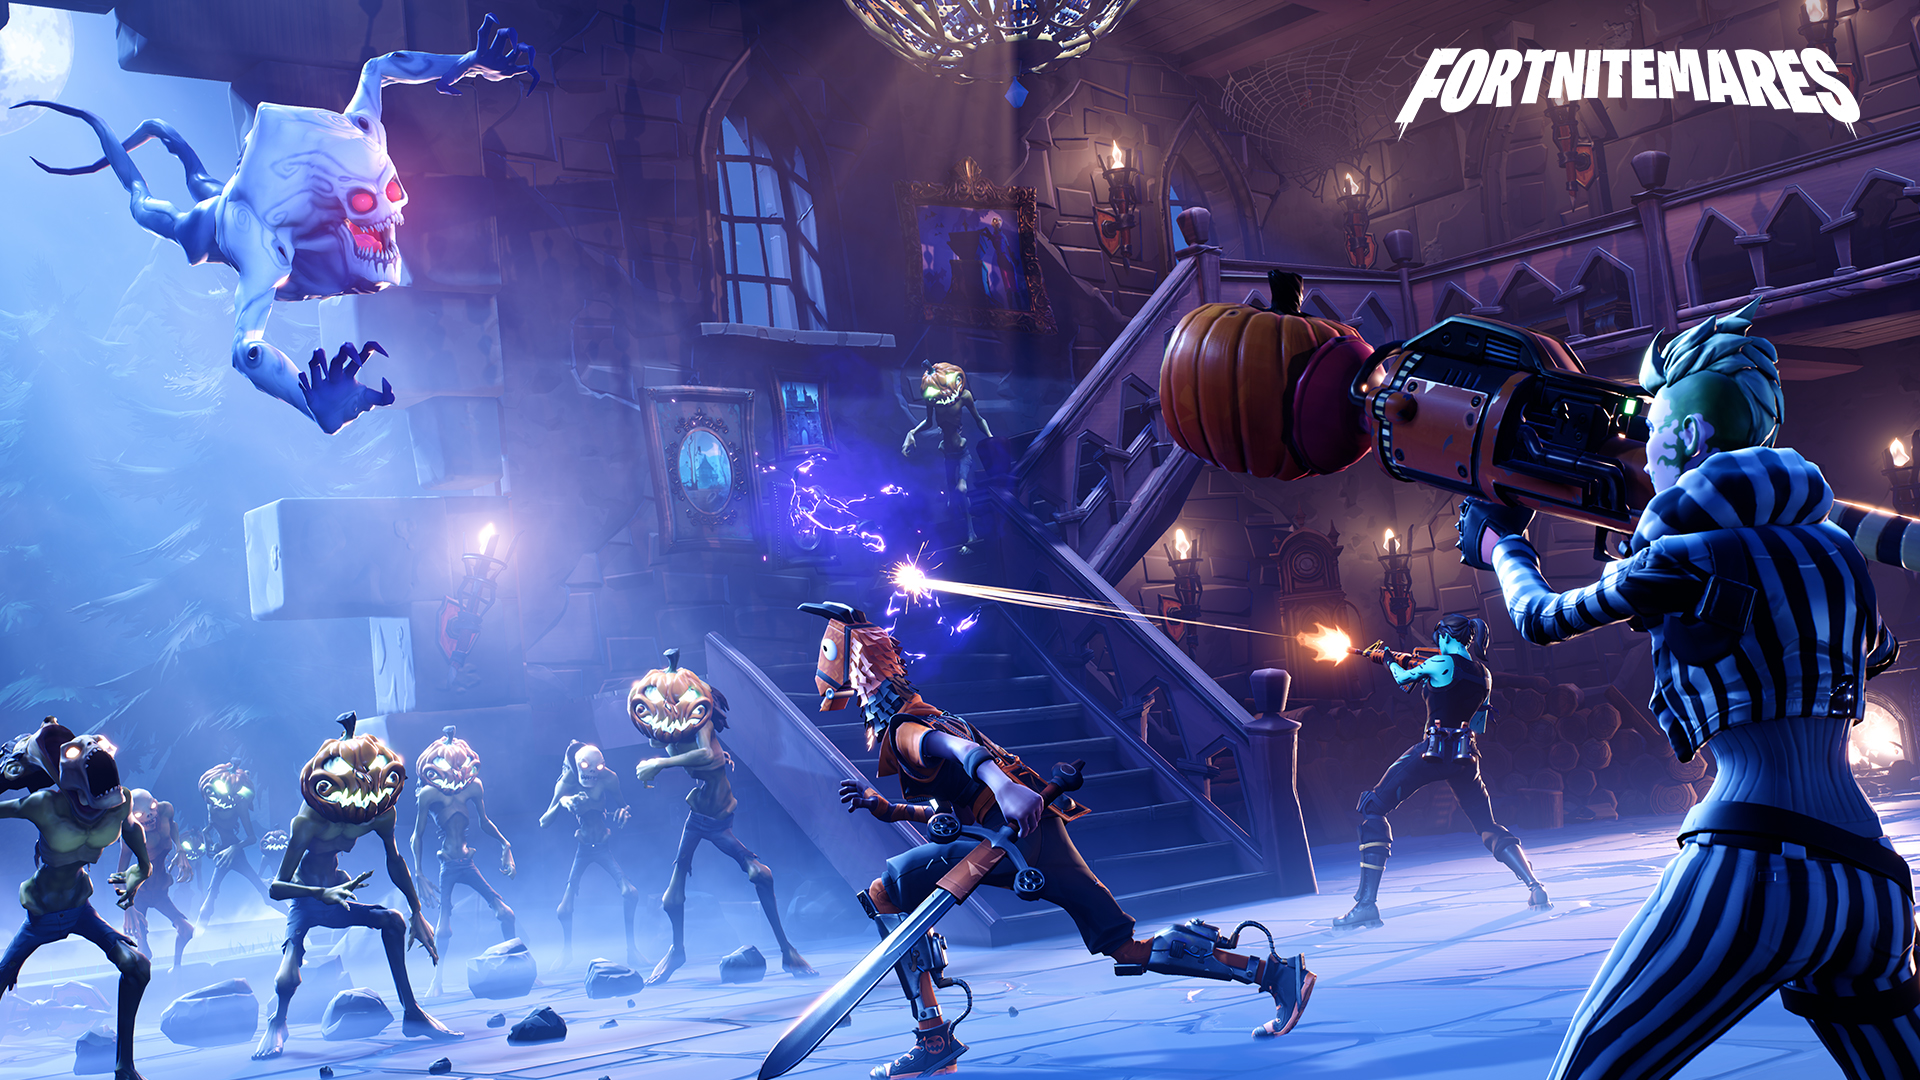 StW06_Fortnitemares_Screenshots_PumpkinLauncher.jpg